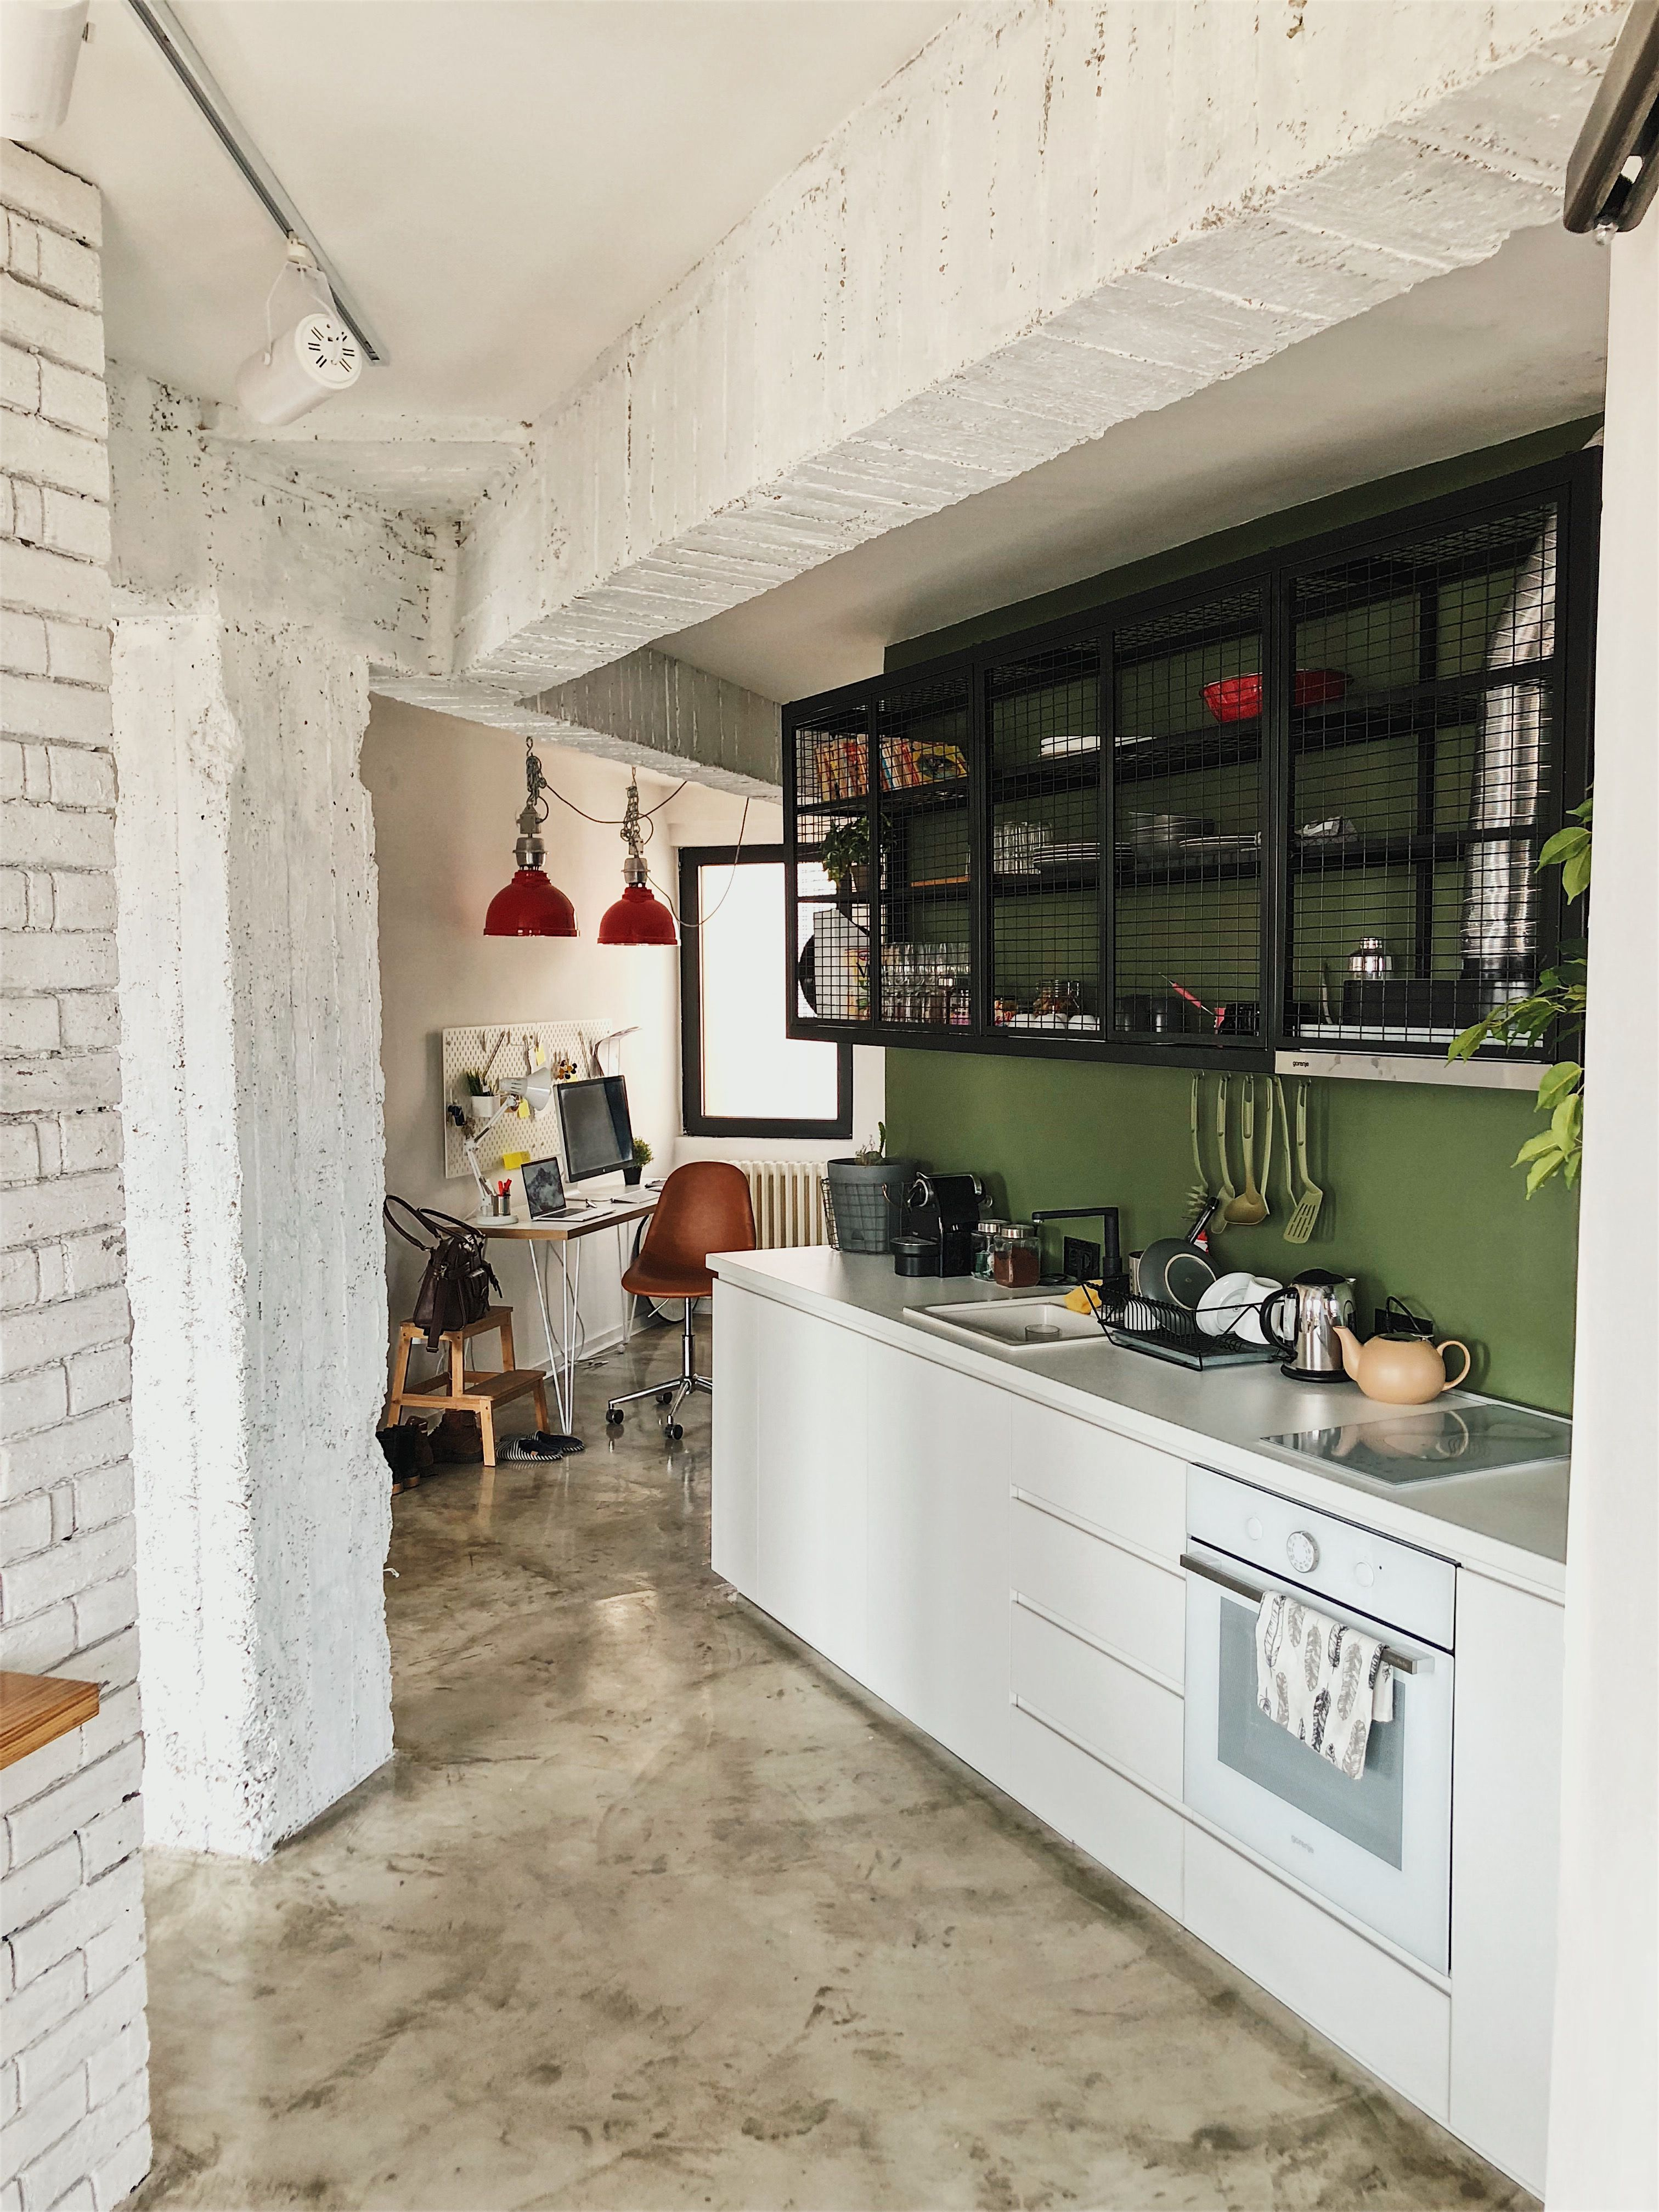 Erin and Ben Napier on HGTV's 'Home Town' Reveal One Key